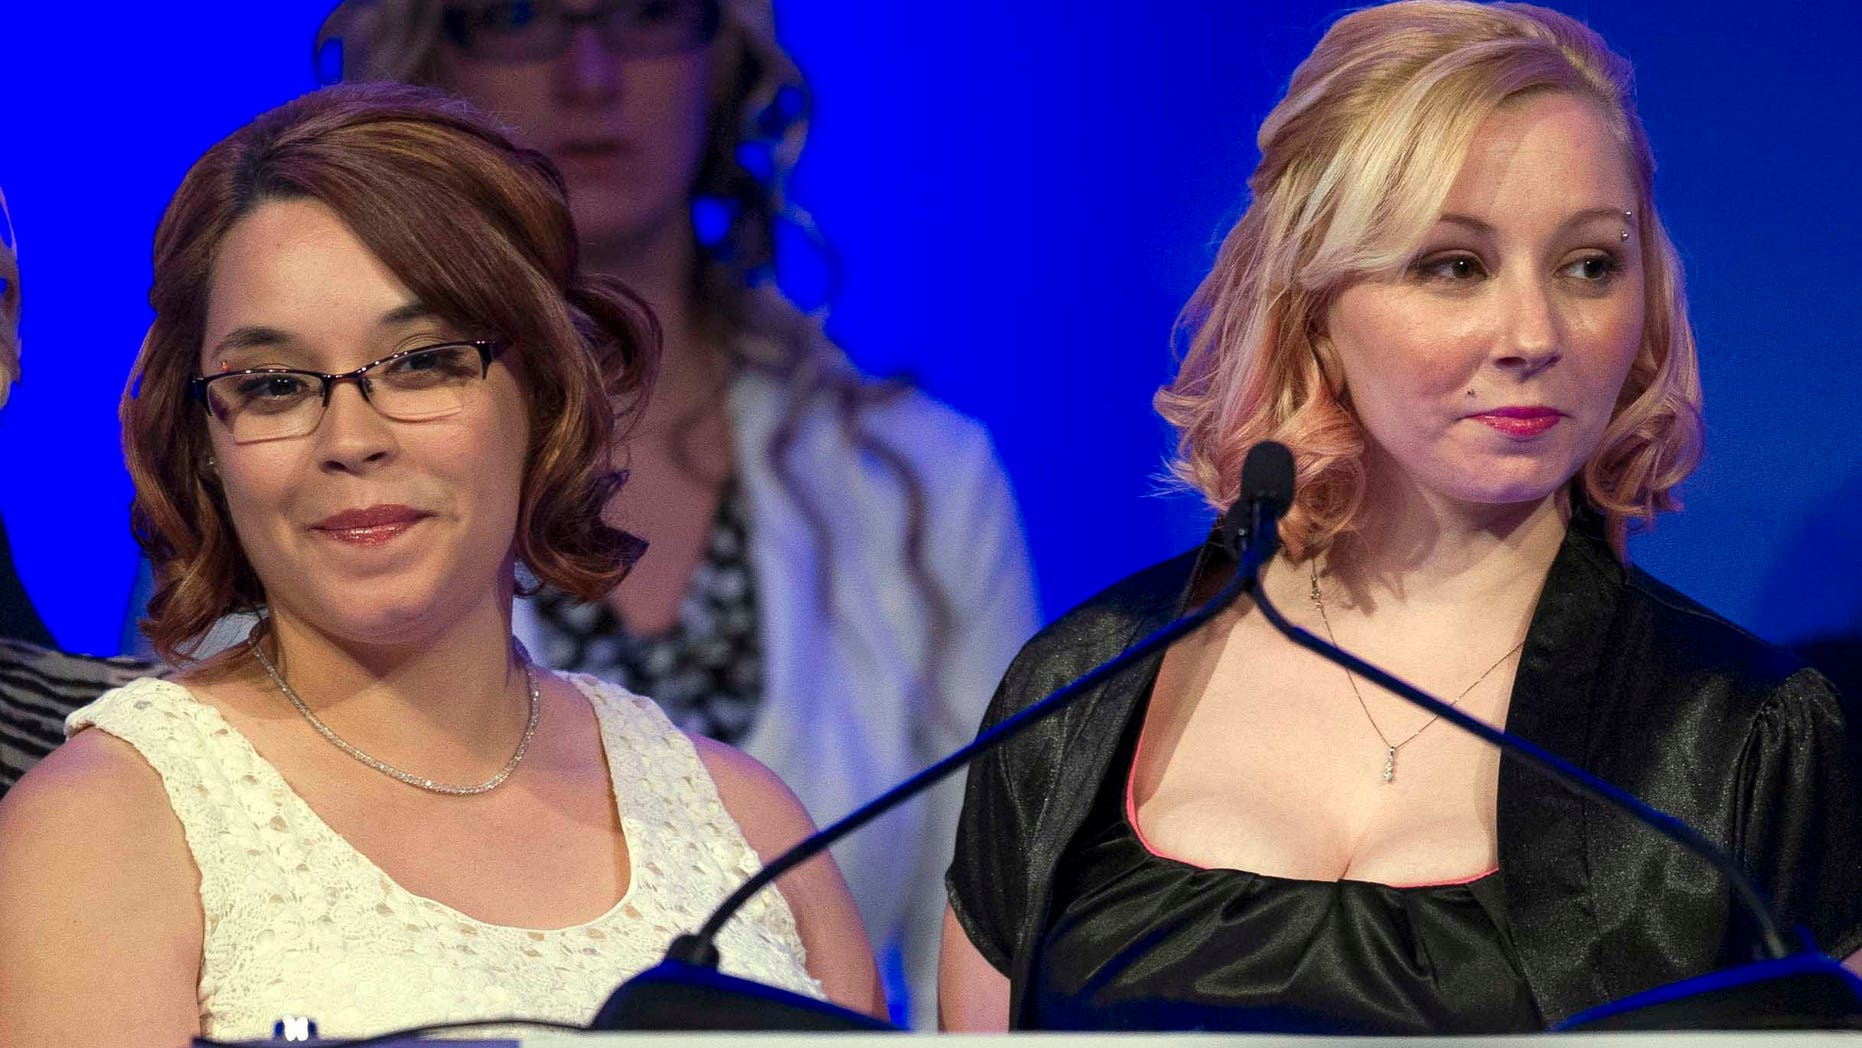 Kidnapping survivors Gina DeJesus, left, and Amanda Berry are honored at the annual National Center for Missing and Exploited Children's Hope Awards dinner in Washington. For years, the two women and a third, Michelle Knight, were held captive in a Cleveland home by Ariel Castro before finally escaping in 2013.